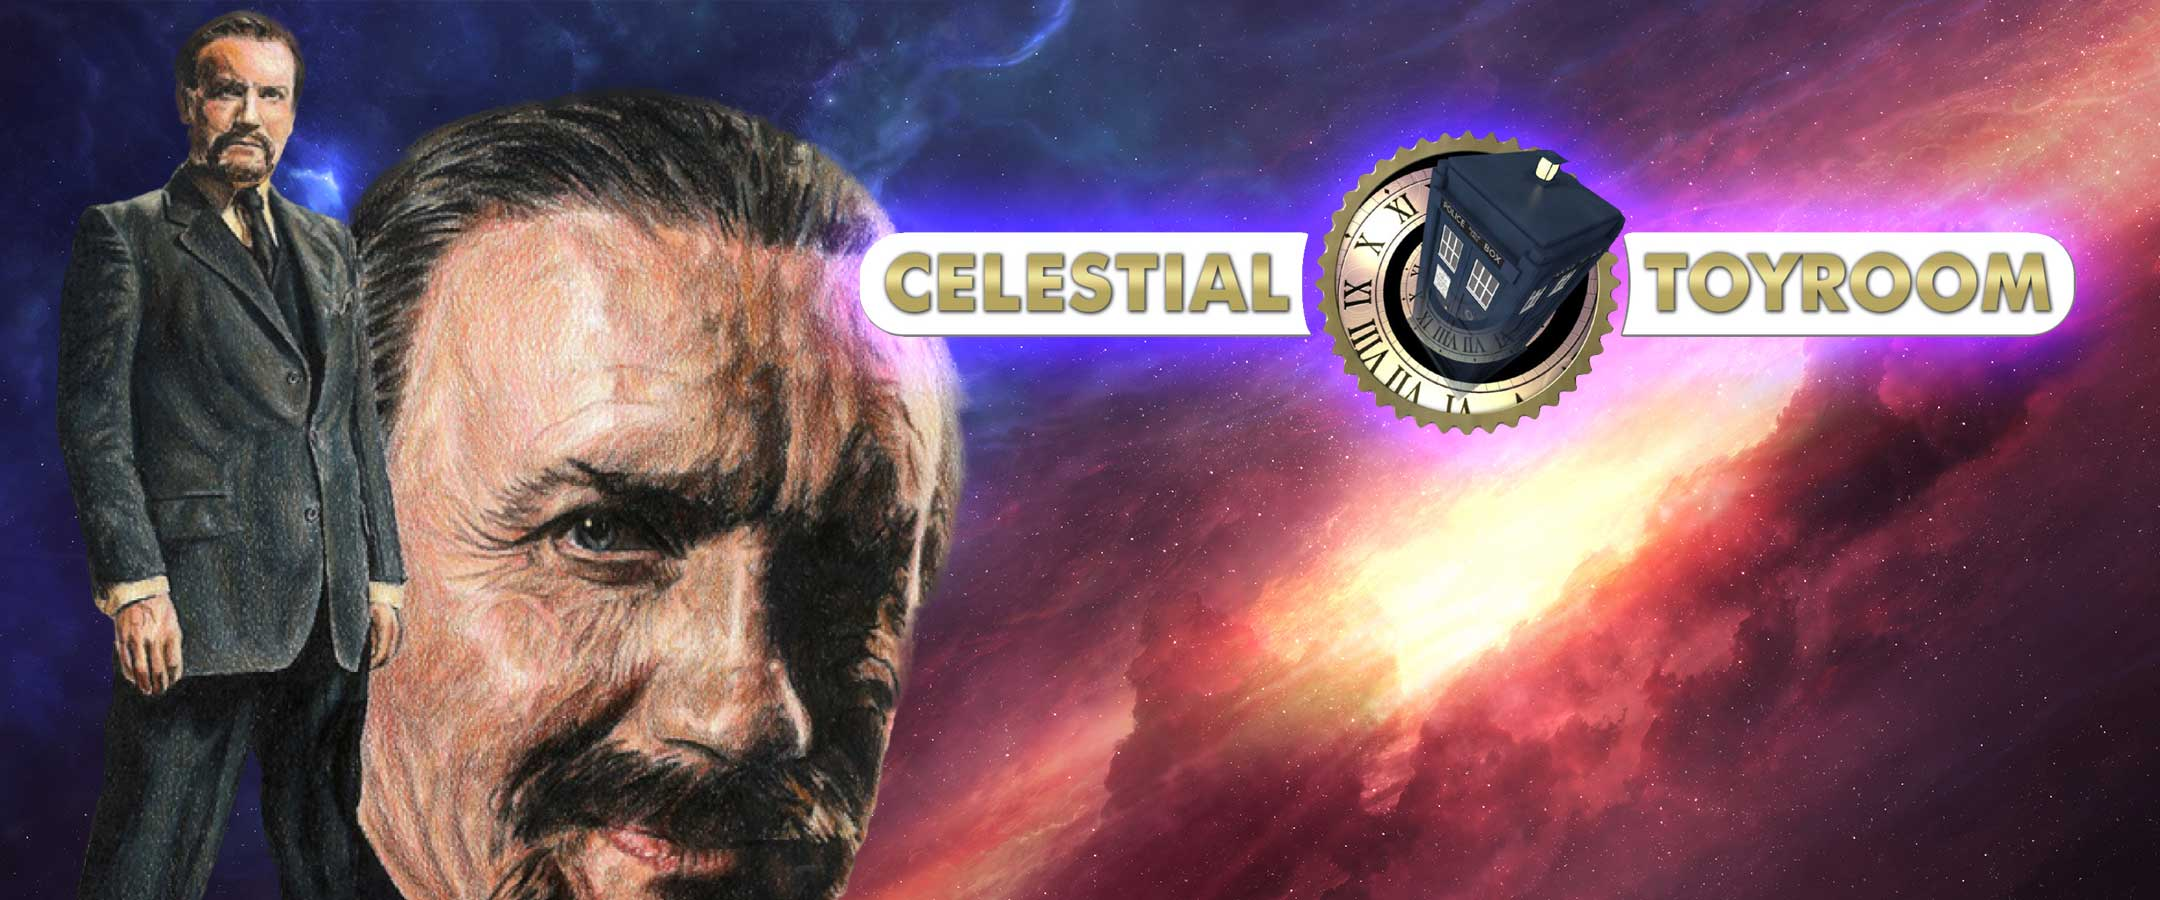 Celestial Toyroom 511 Review